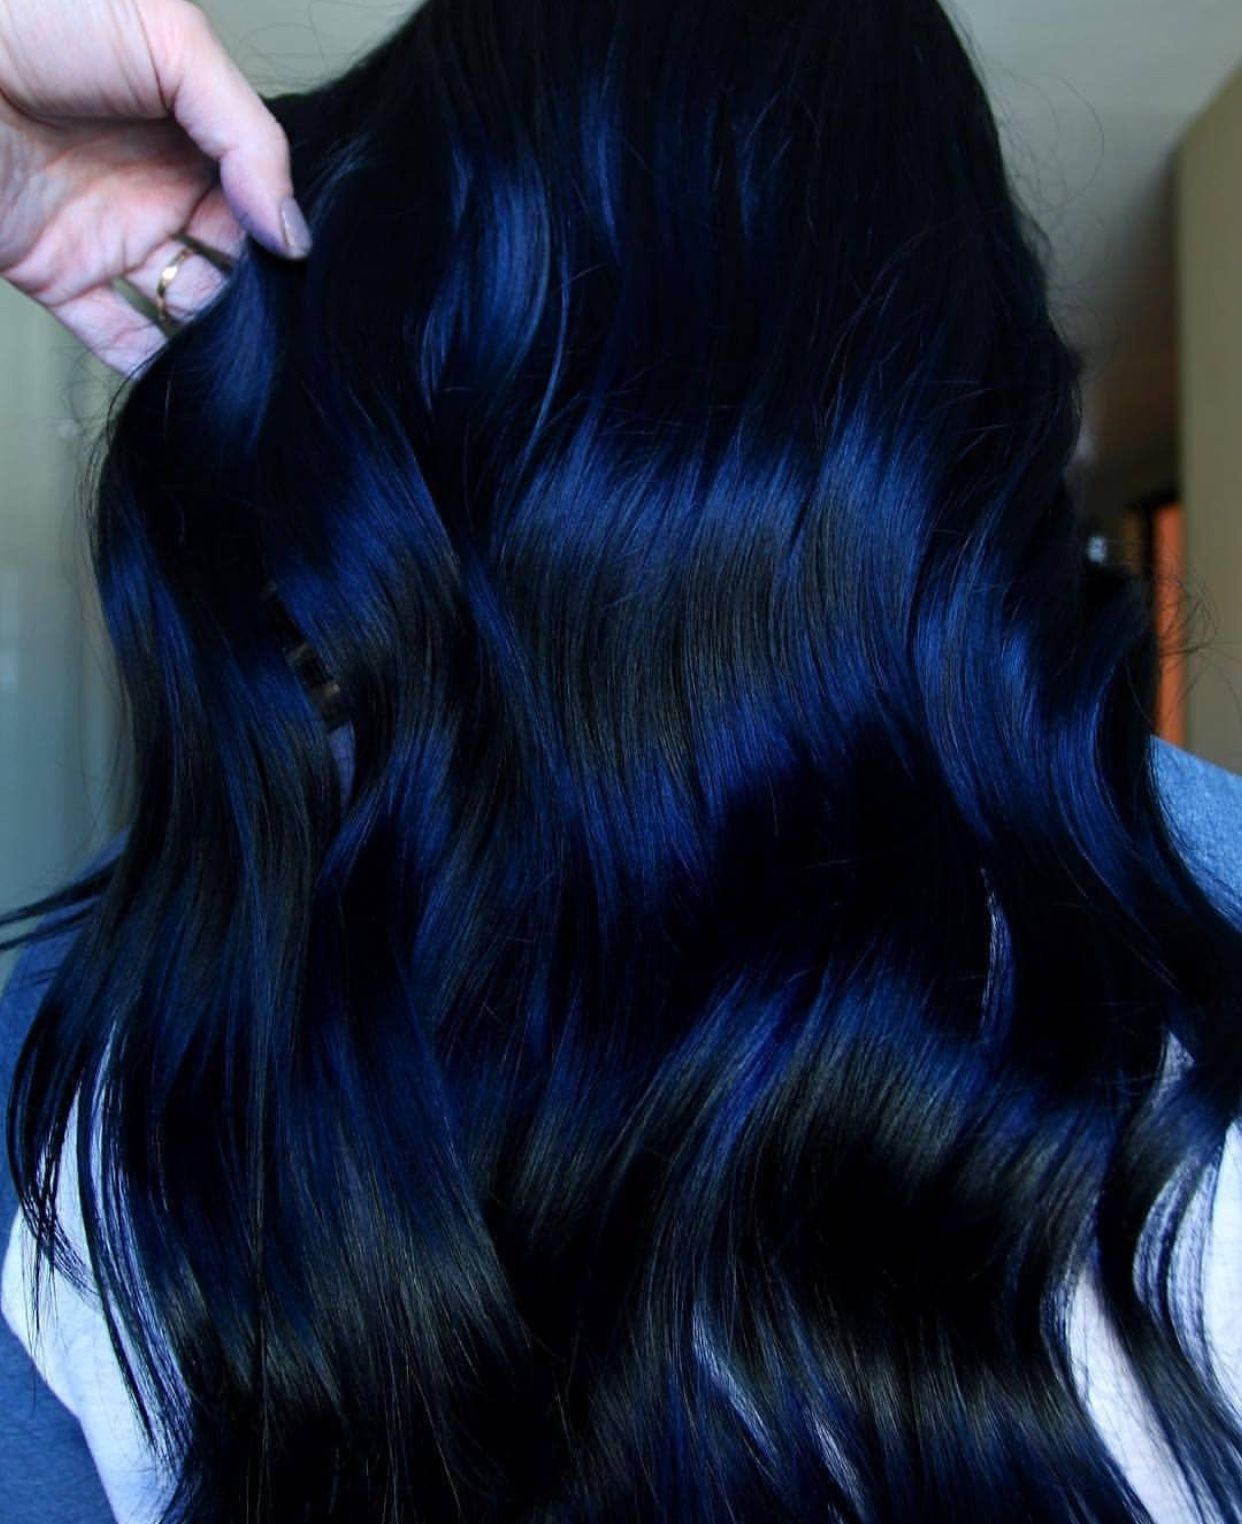 Pin By Shanell Eastcoast On Hair In 2020 Hair Color For Black Hair Blue Black Hair Color Hair Color Blue